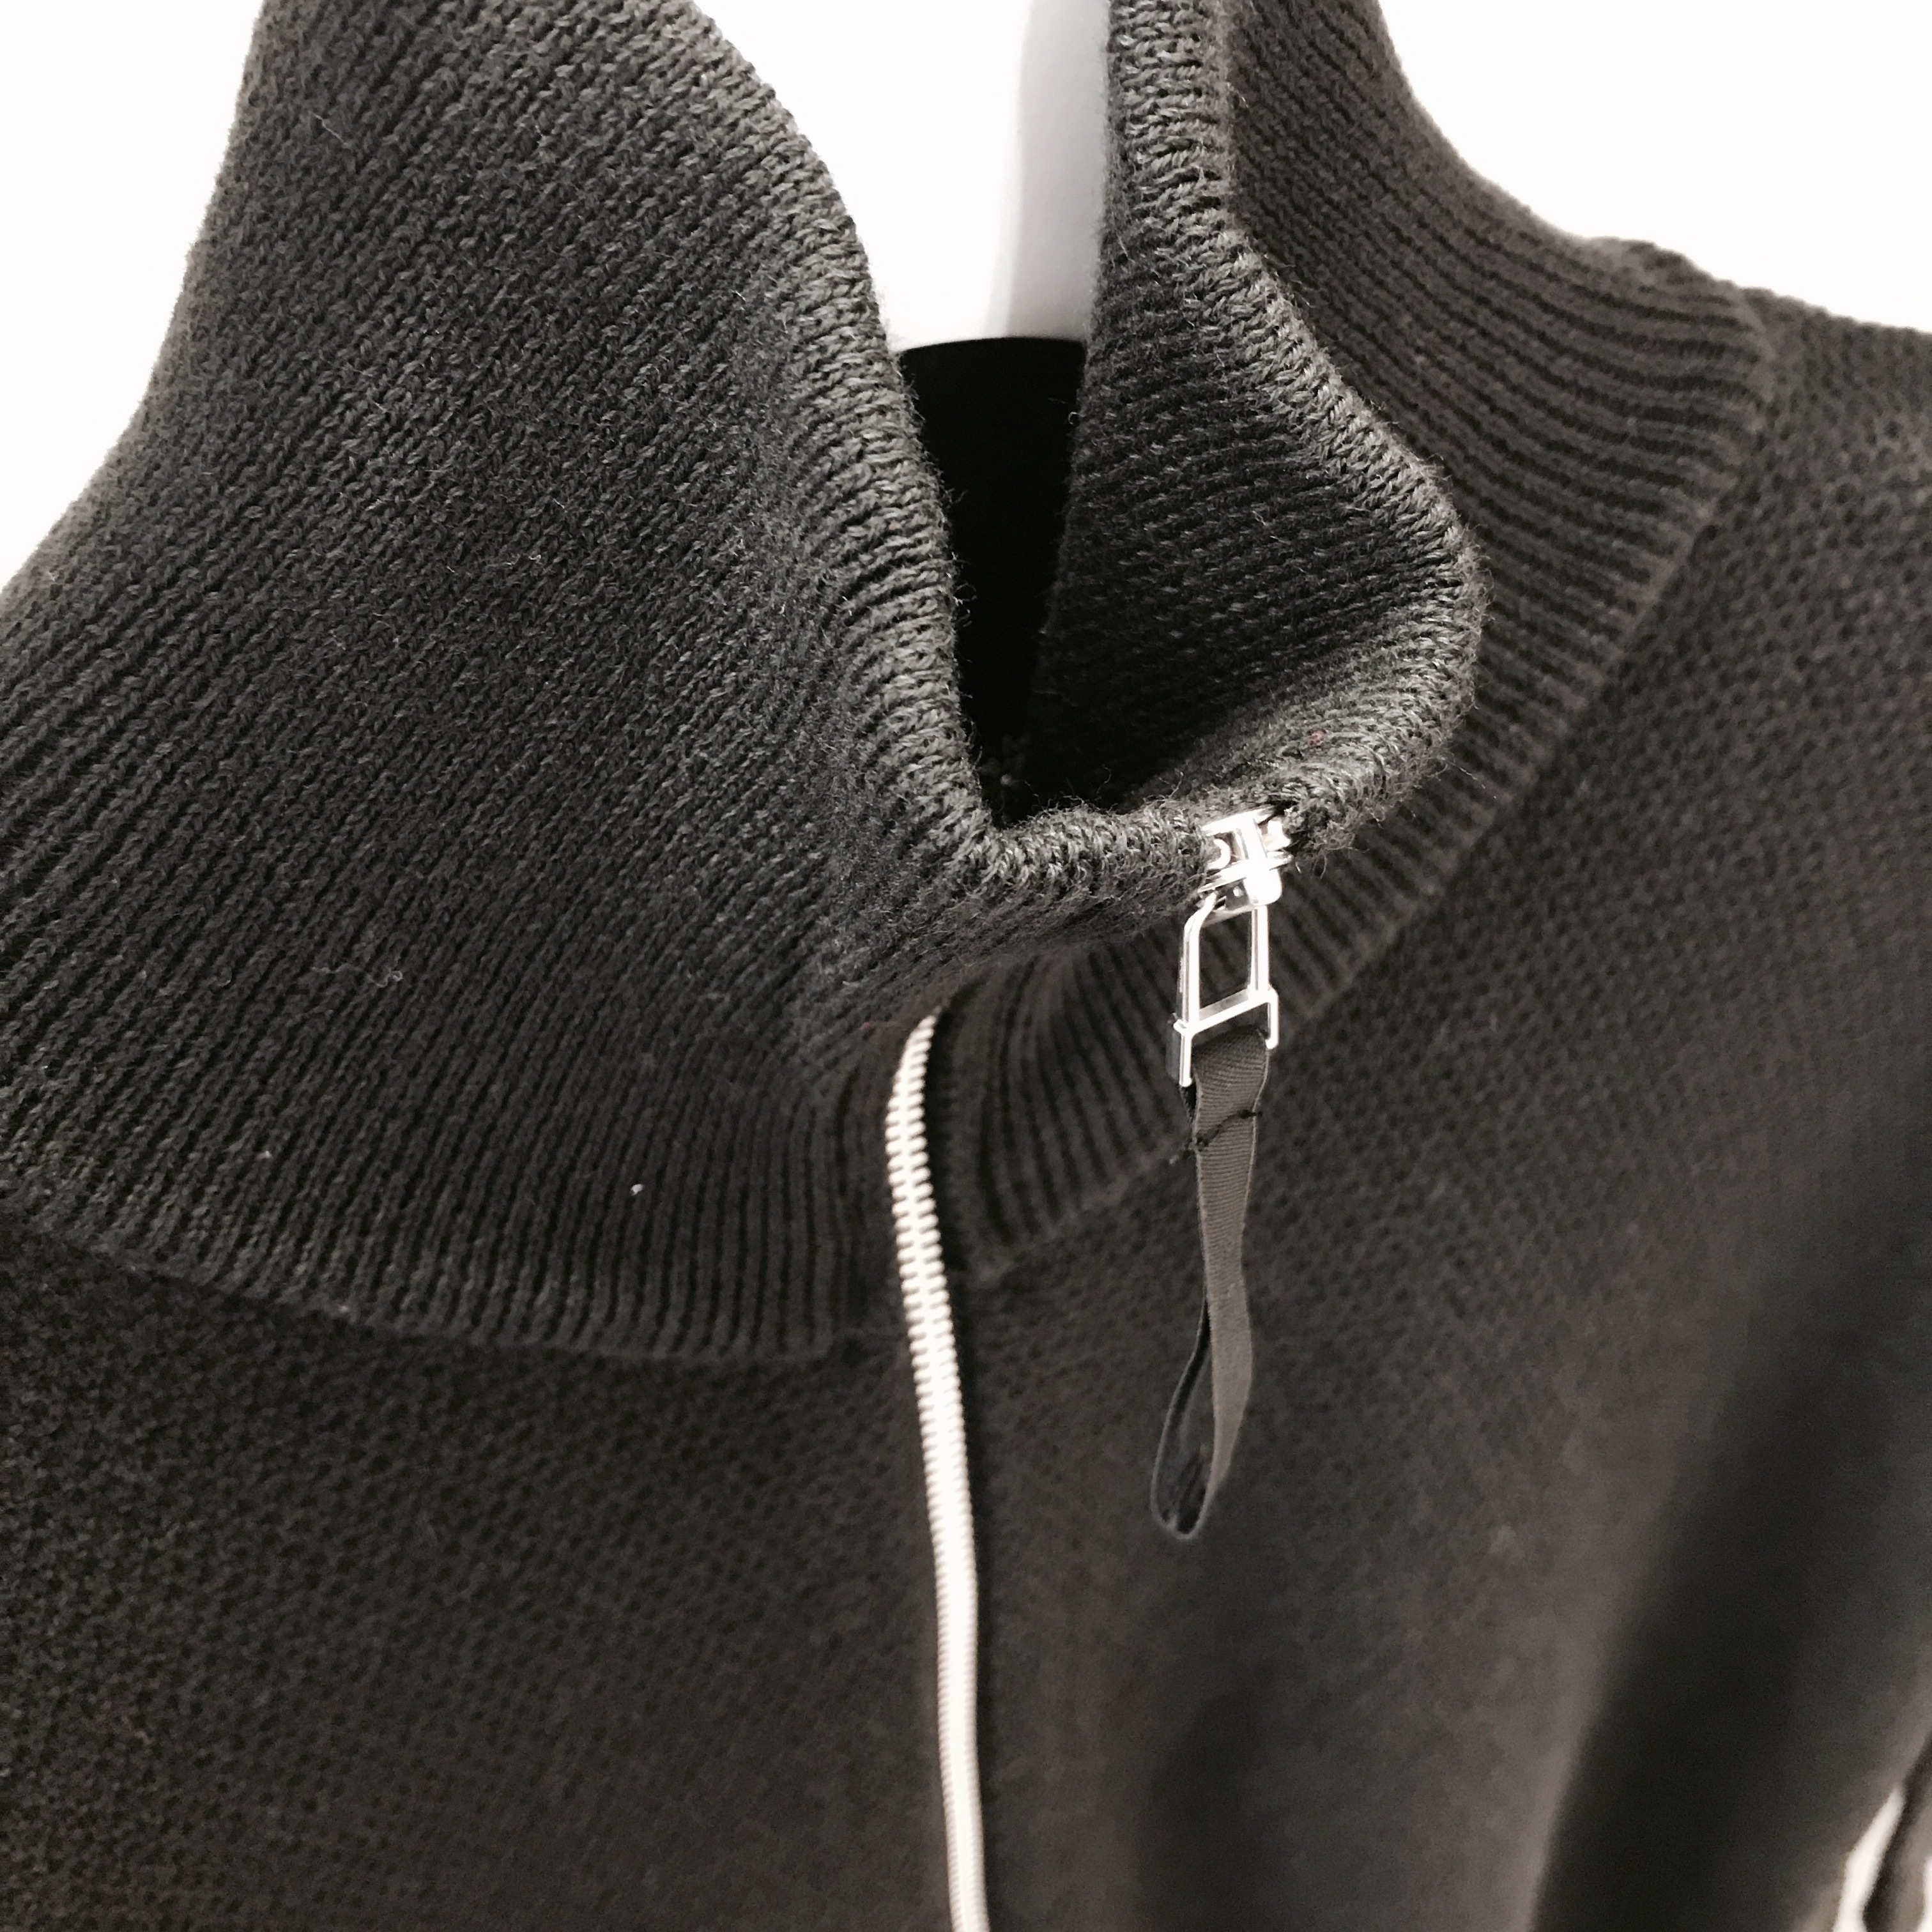 ROTOL HALF ZIP POCKET KNIT BLACK